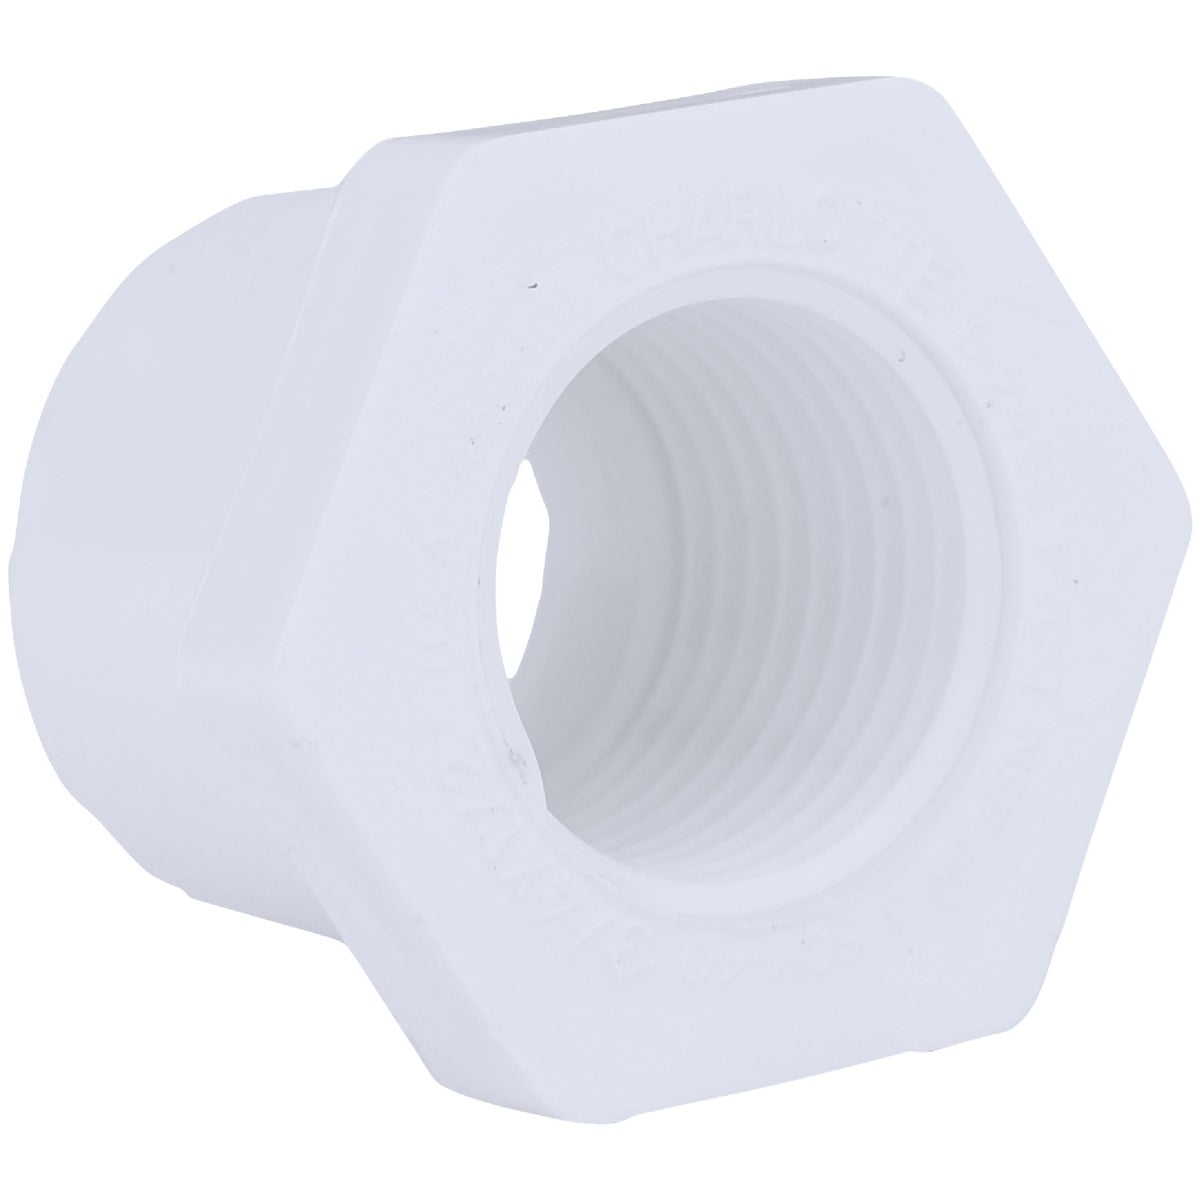 3/4X1/2 PVC SPXF BUSHING - 34275 by Genova Inc